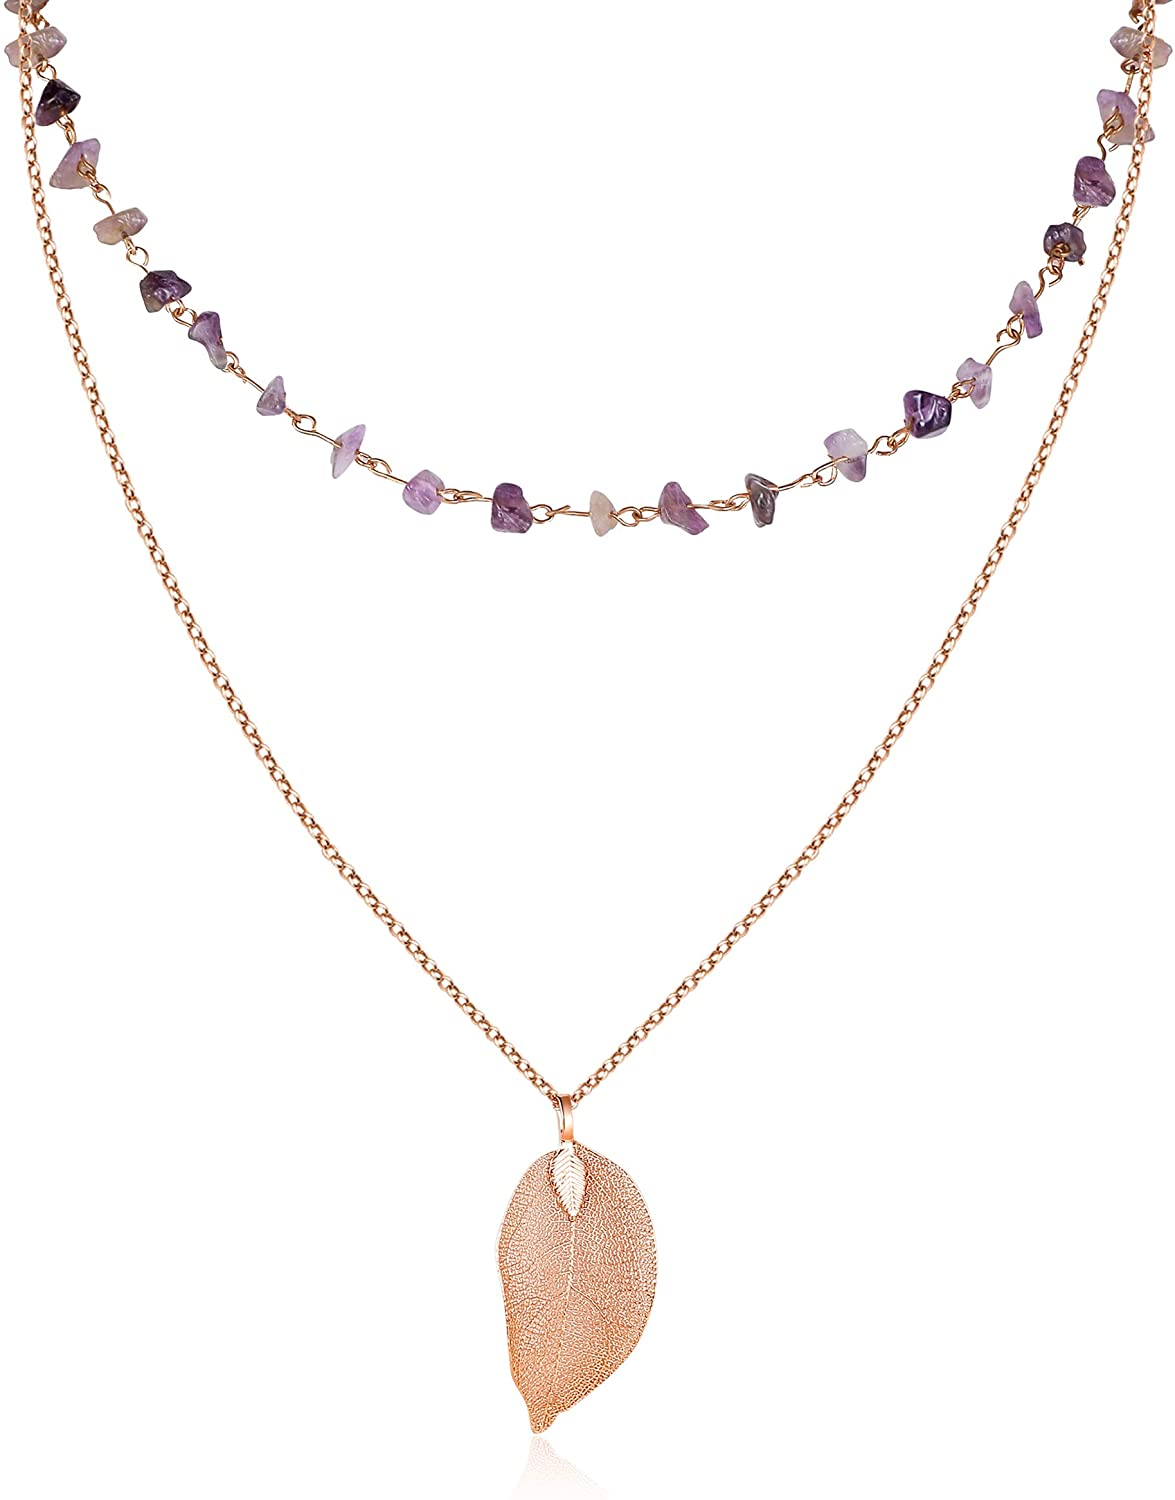 Golden Leaf and Crystal Choker Layered Necklace, Fashion Jewelry for Women